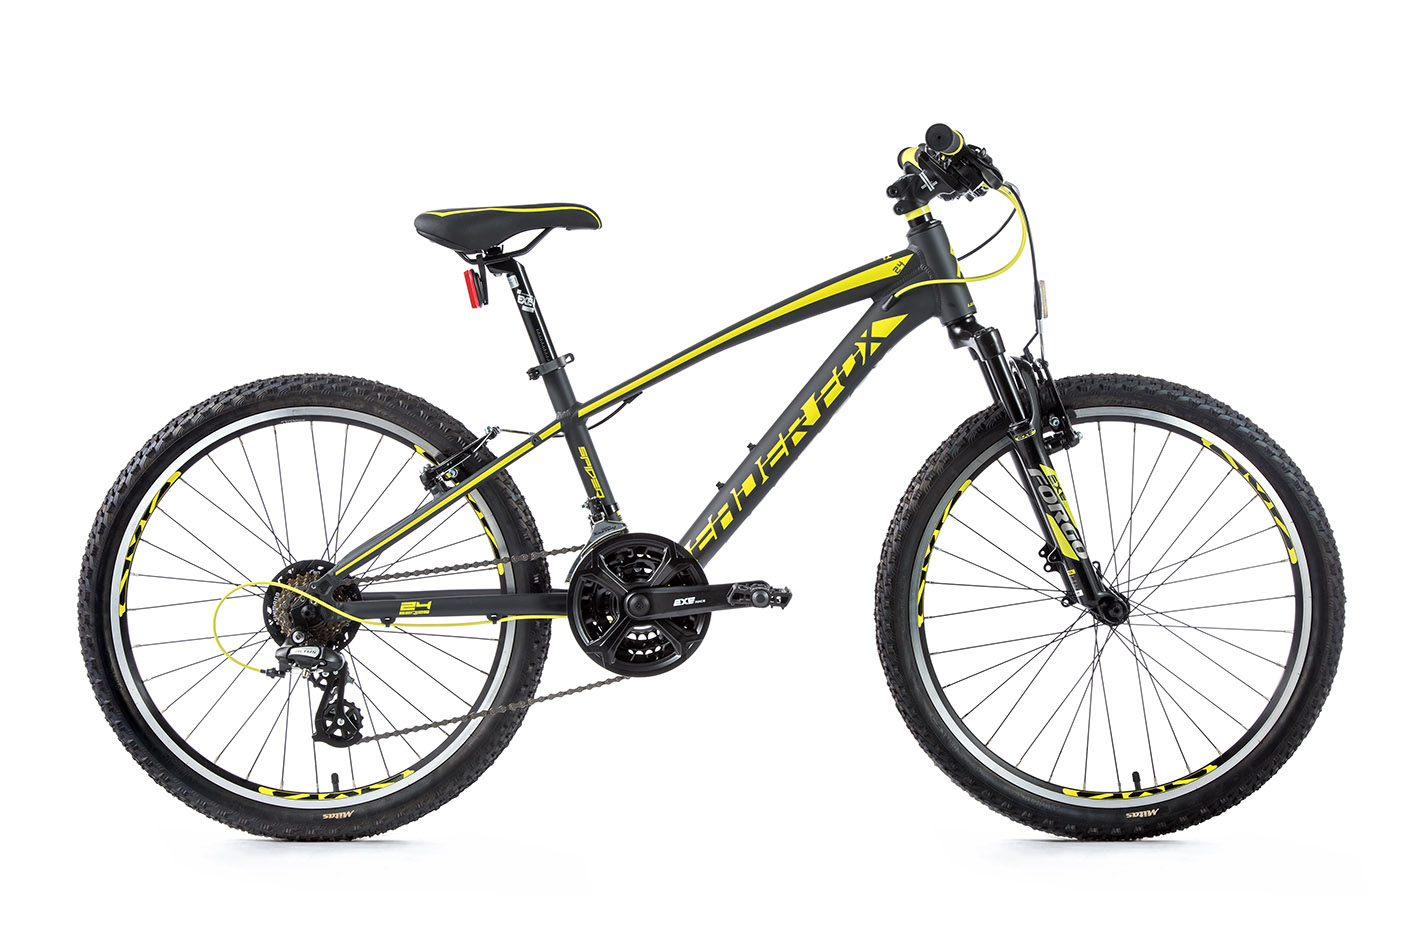 Bicicleta MTB 24 inch Leader Fox Spider Boy, 2020